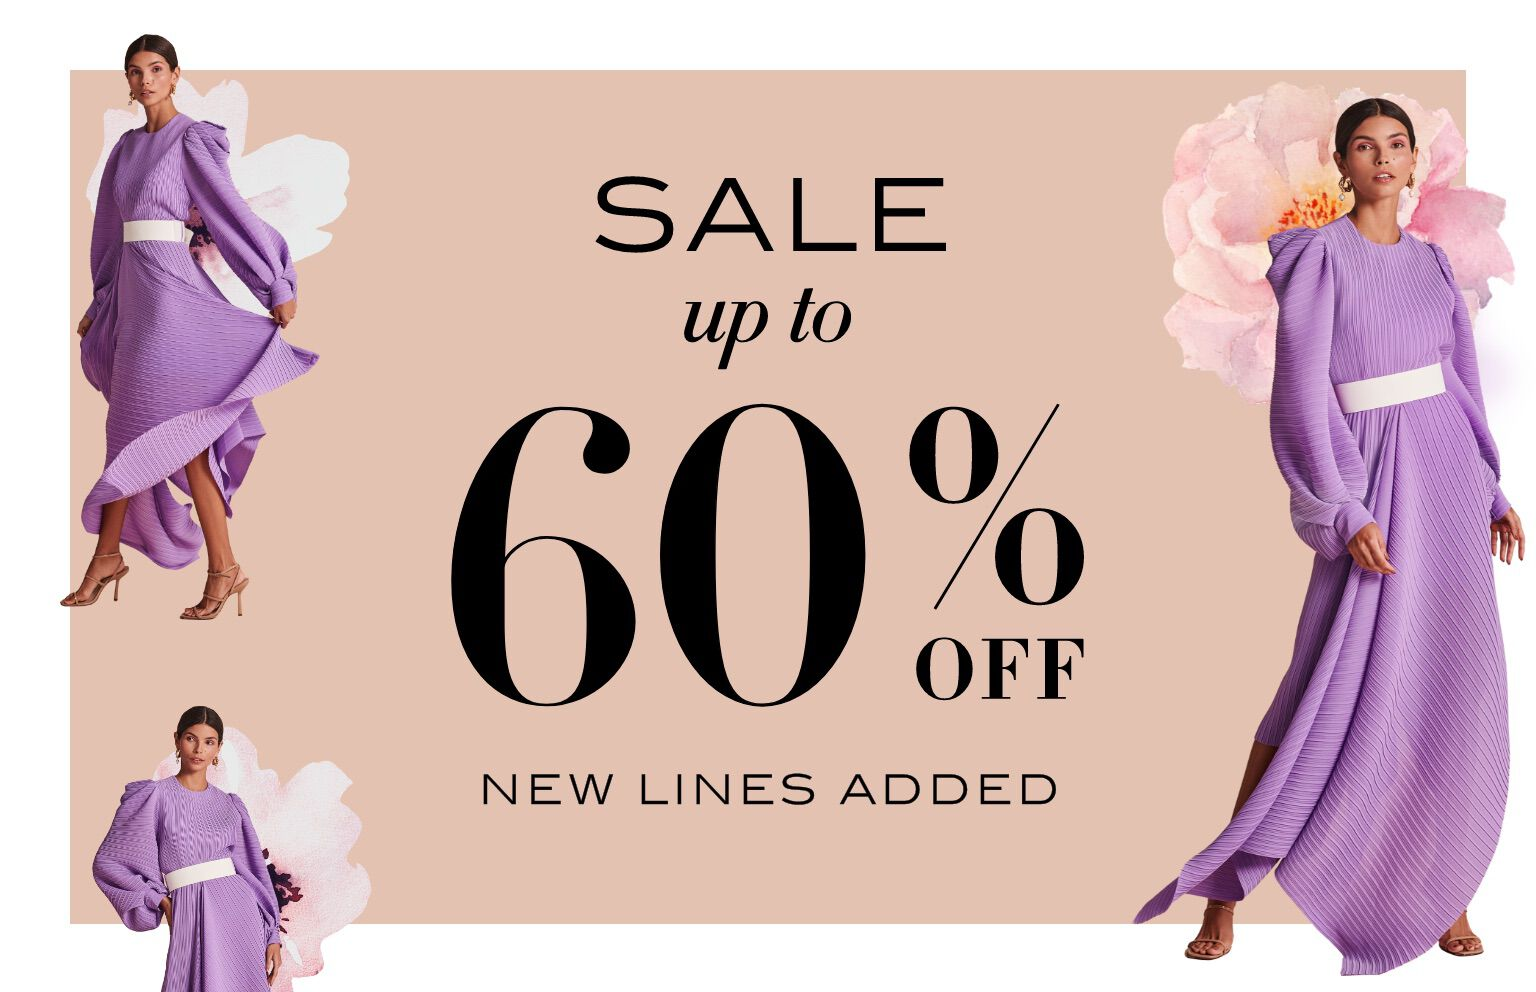 Our Sale Just Got Better